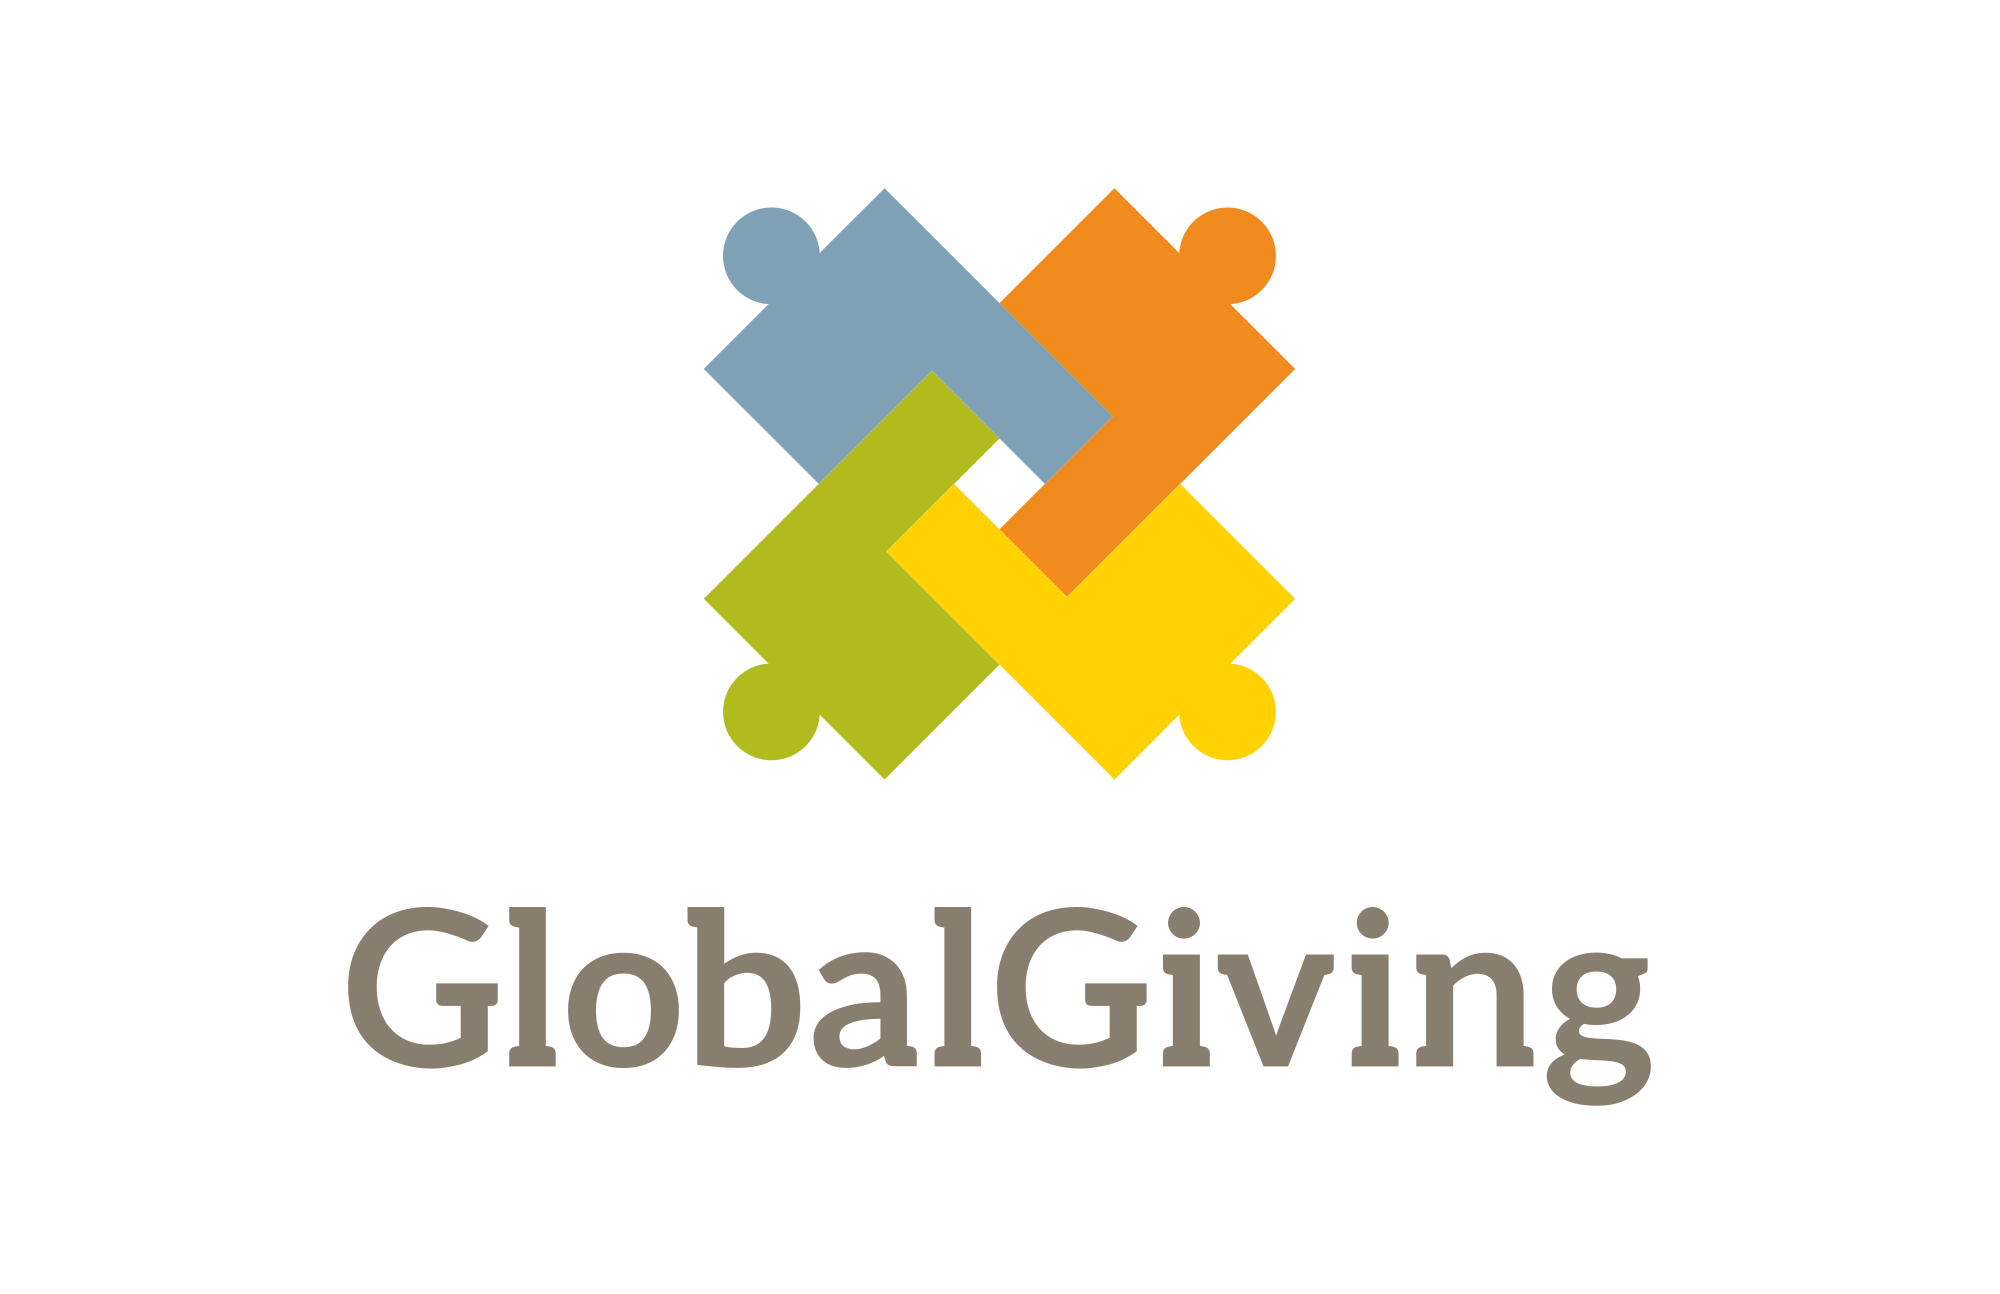 logos and brand assets   globalgiving org